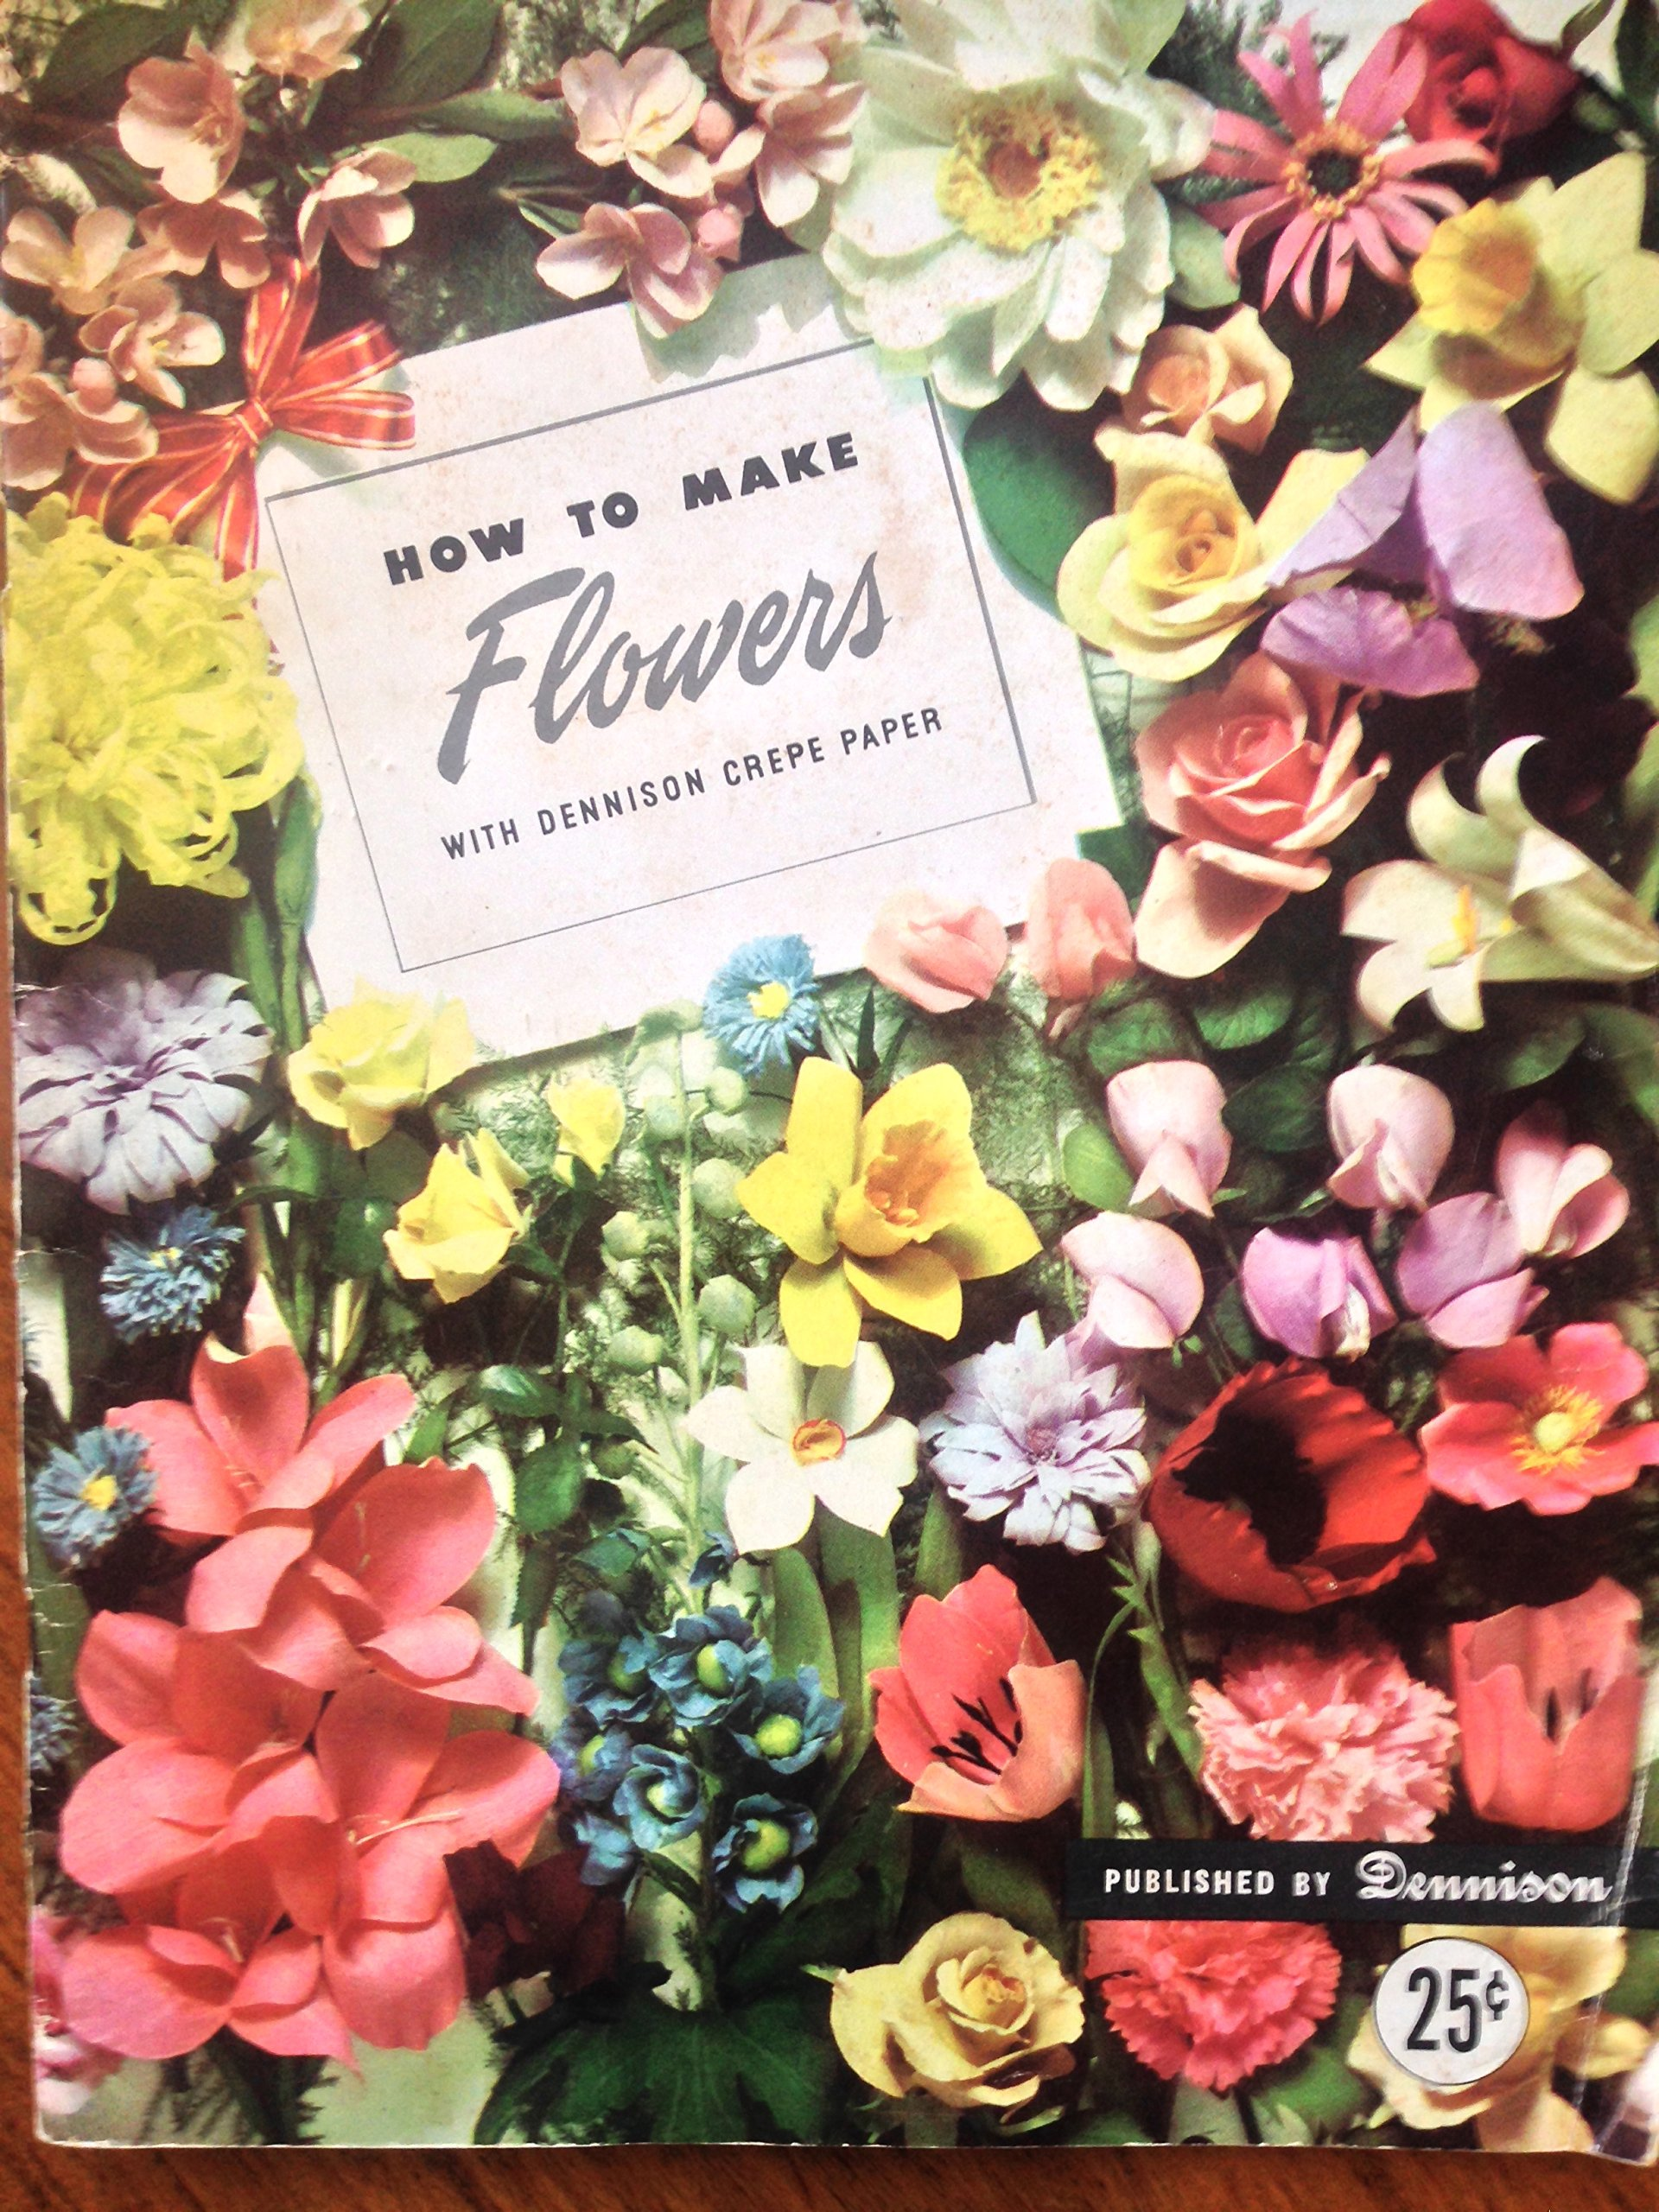 How To Make Flowers With Dennison Crepe Paper Dennison Co Amazon